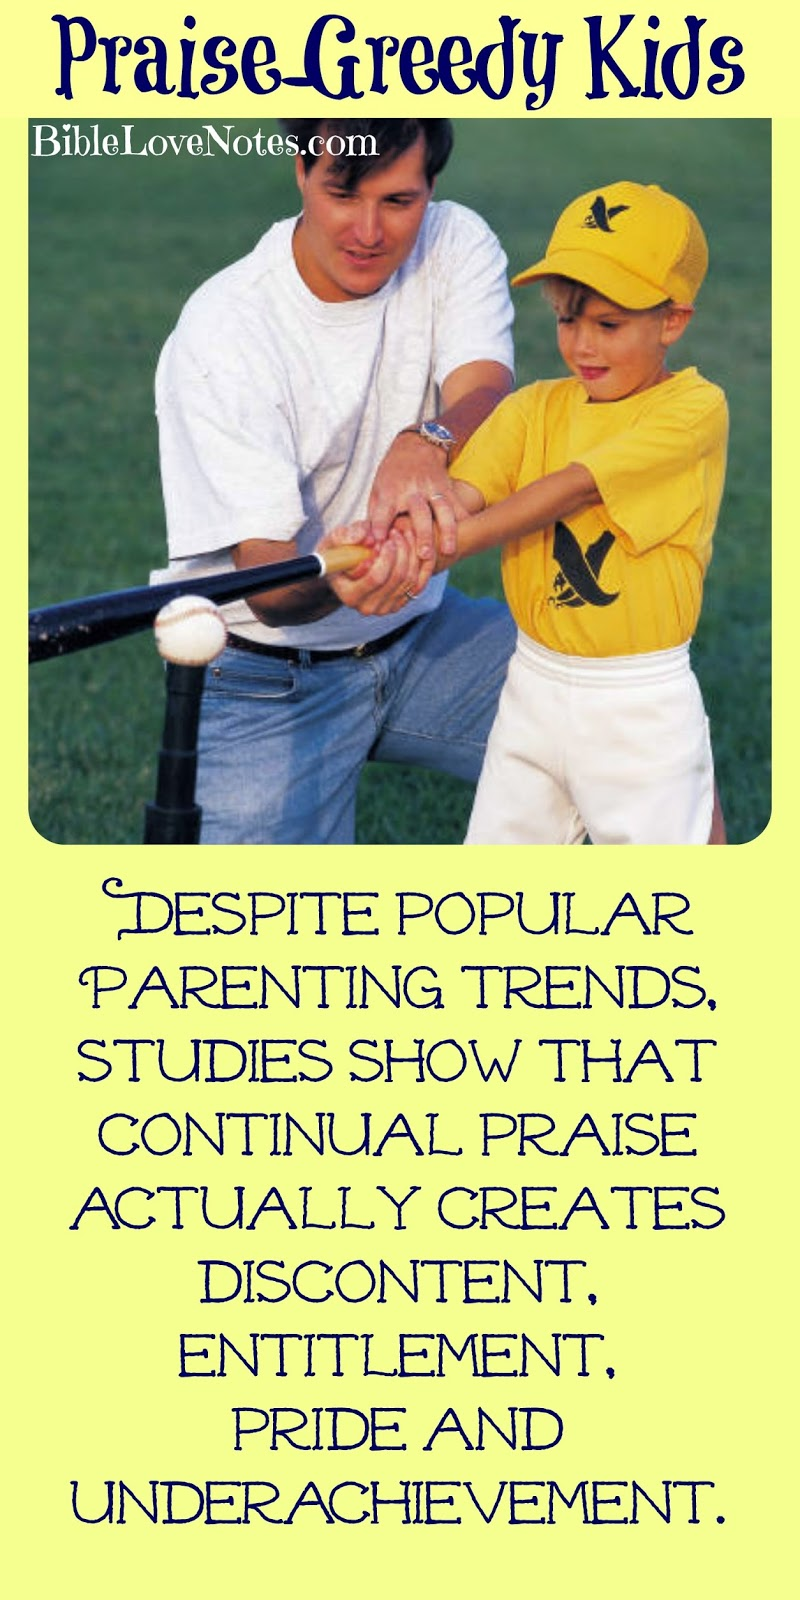 Parenting, Too much praise, praise-greedy kids, praise-greed, Bible parenting